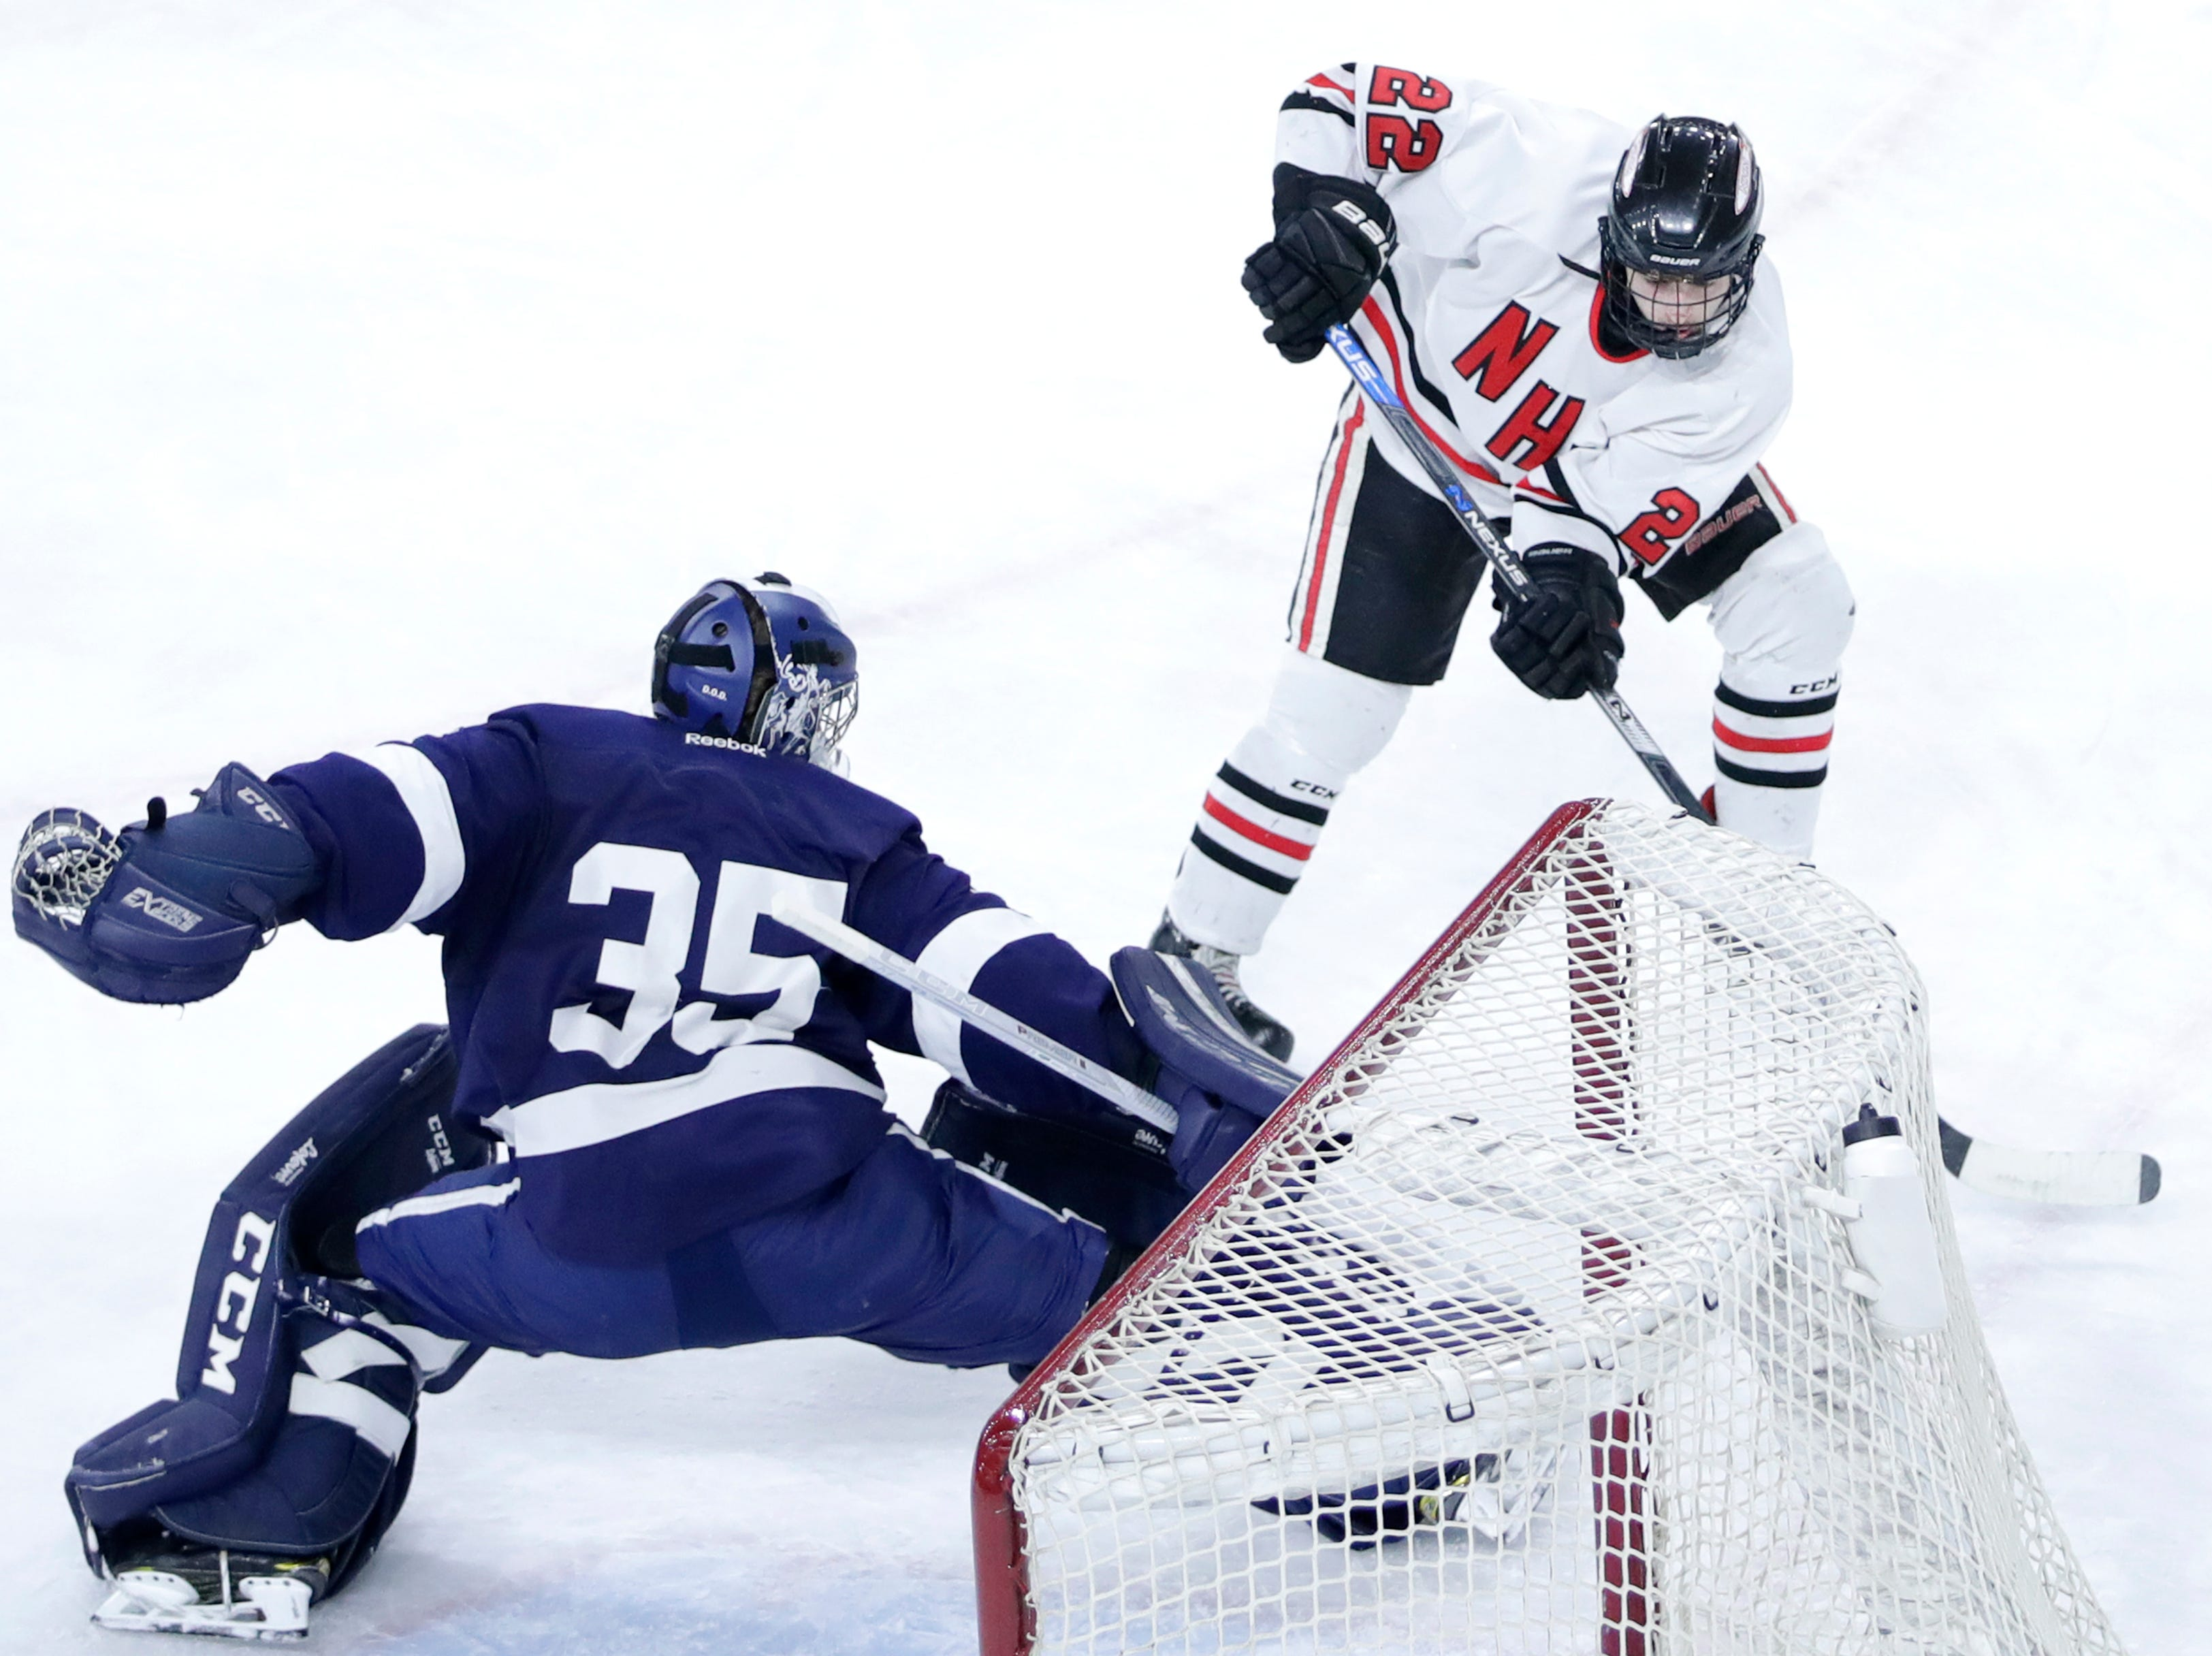 Neenah/Hortonville/MenashaÕs Mason Marquardt gets the puck past HudsonÕs Alex Cohen during the WIAA State Hockey Tournament quarterfinals Thursday, Feb. 28, 2019, at Veterans Memorial Coliseum in Madison, Wis.